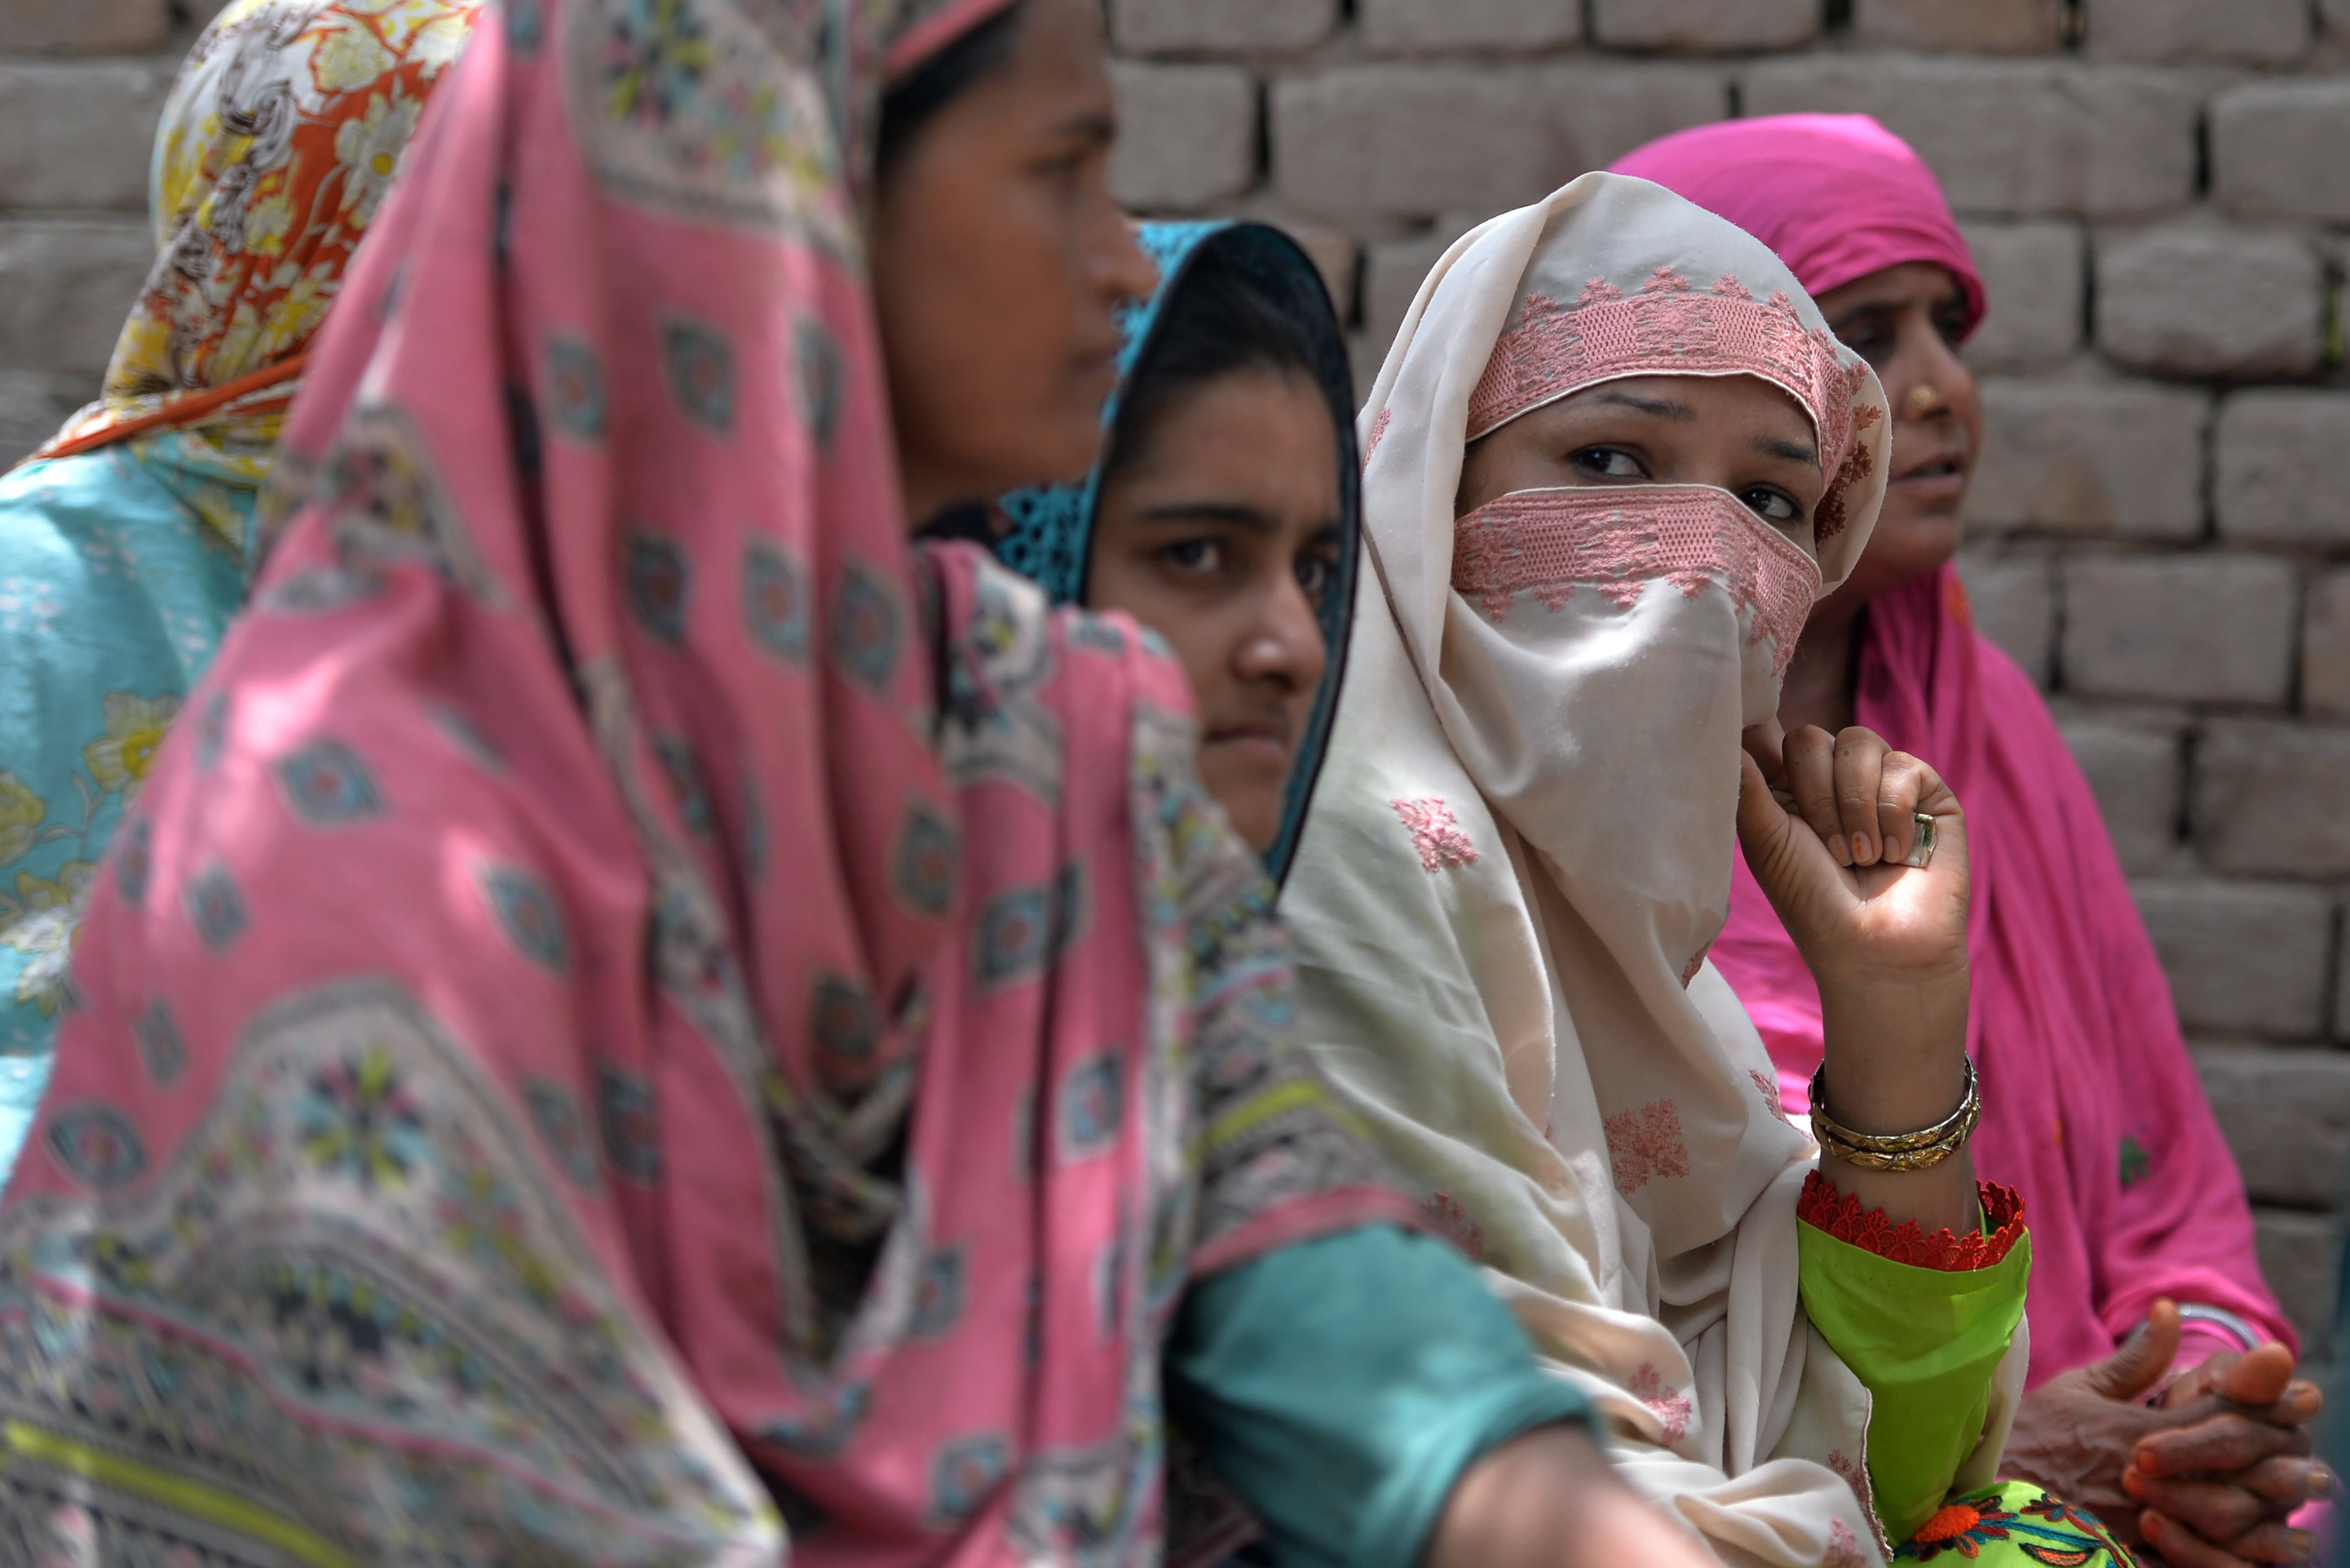 Defying local ban, women in Punjab village vow to vote in general elections